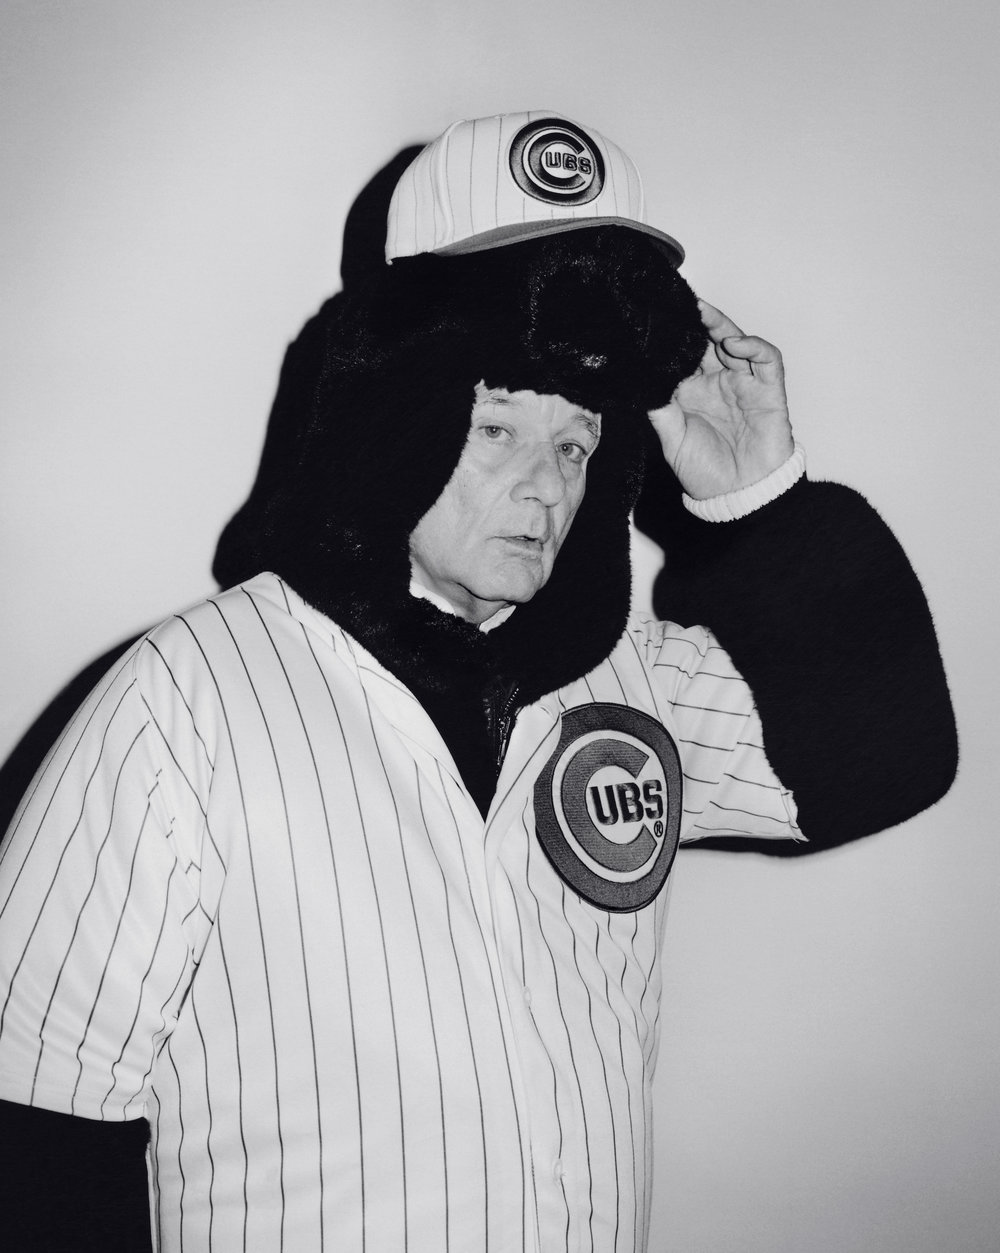 Bill Murray | all images by Andreas Laszlo Konrath | CREDITS: DOLCE & GABBANA animal suit jacket and Cubs jersey and hat.